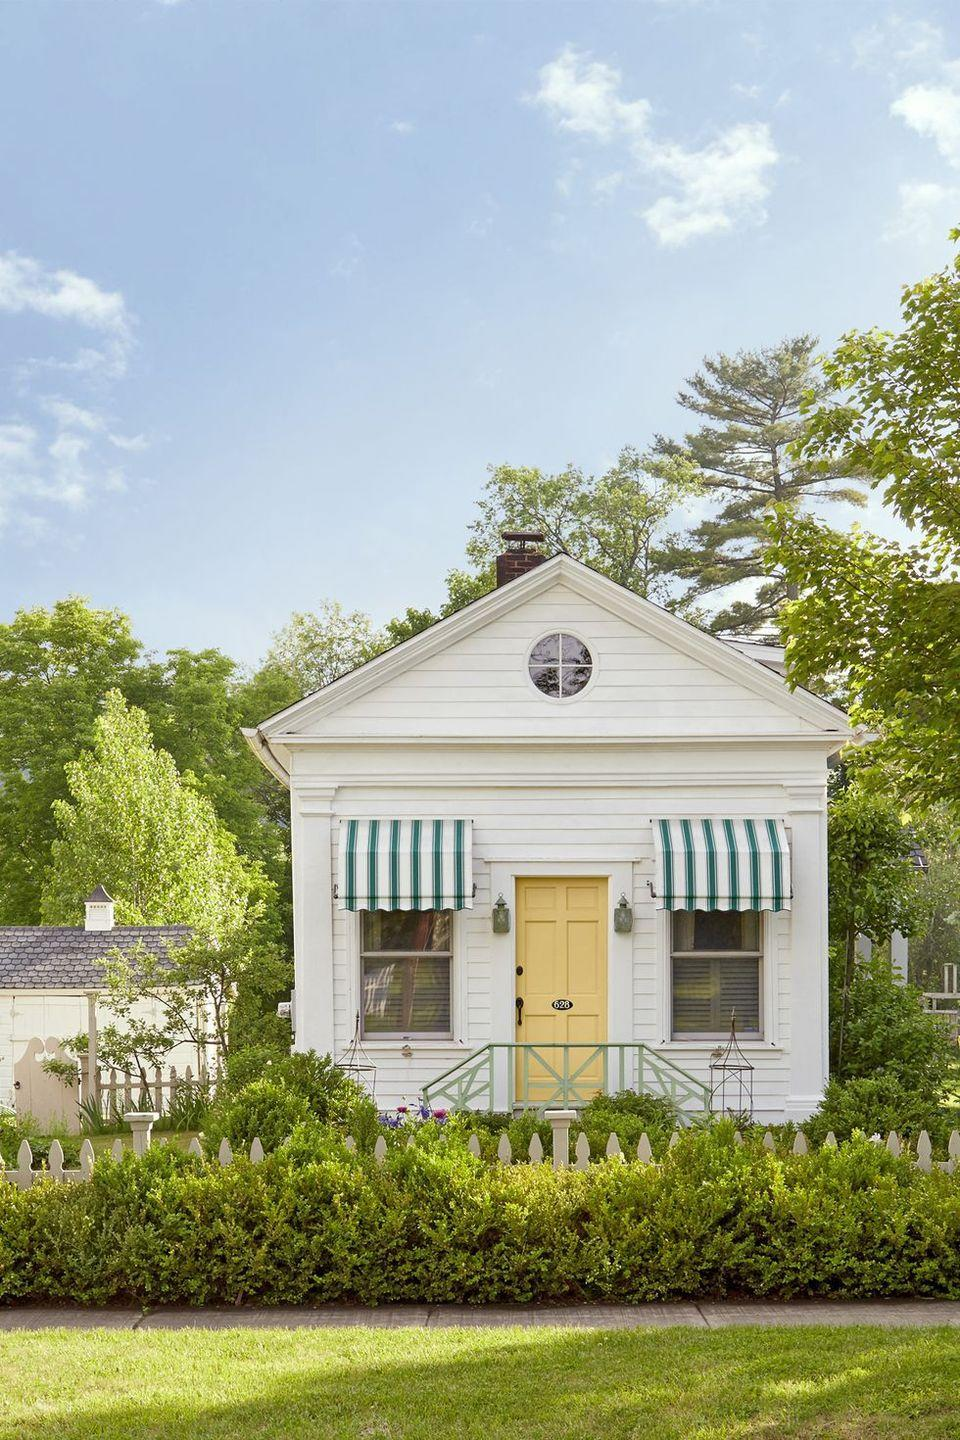 """<p>It doesn't get much cuter than this tiny schoolhouse-turned-cottage with its yellow door and striped green awnings.</p><p><a class=""""link rapid-noclick-resp"""" href=""""https://store.benjaminmoore.com/storefront/color-samples/paint-color-samples-1-pint/prodPRM01A.html?sbcColor=340"""" rel=""""nofollow noopener"""" target=""""_blank"""" data-ylk=""""slk:SHOP YELLOW PAINT"""">SHOP YELLOW PAINT</a></p>"""